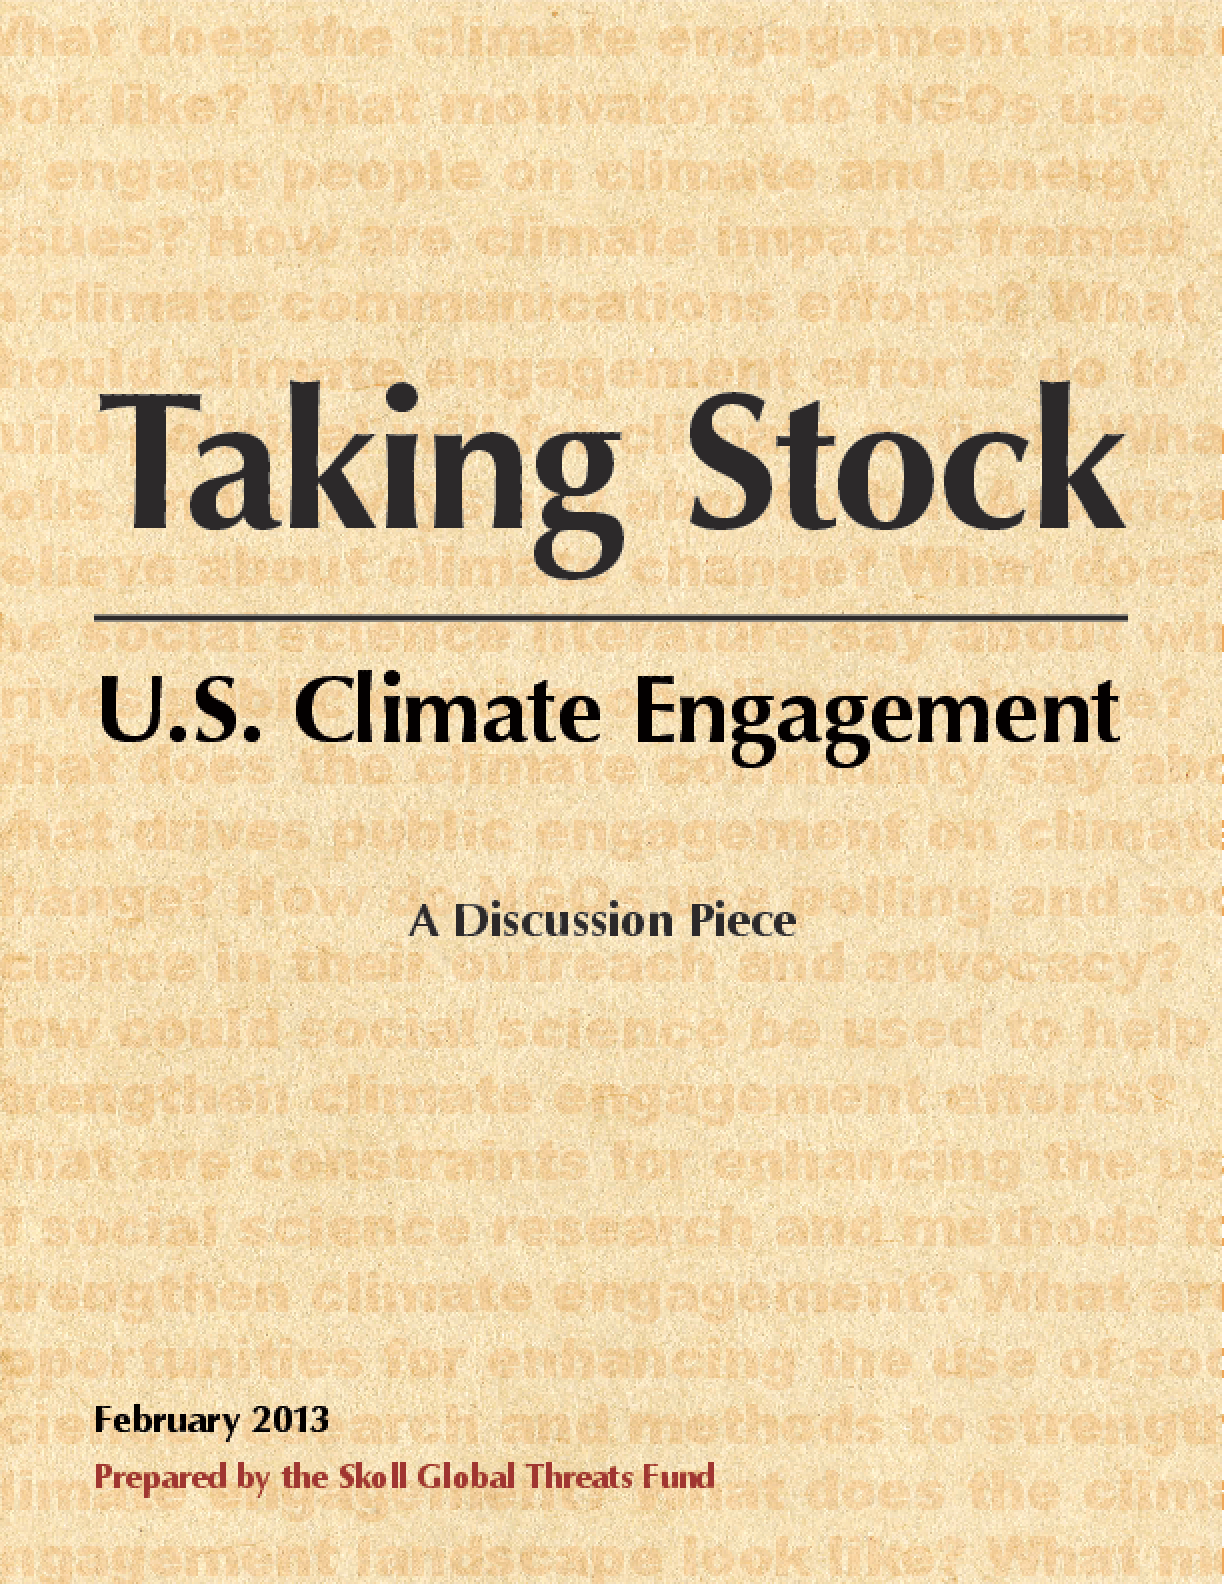 Taking Stock: U.S. Climate Engagement